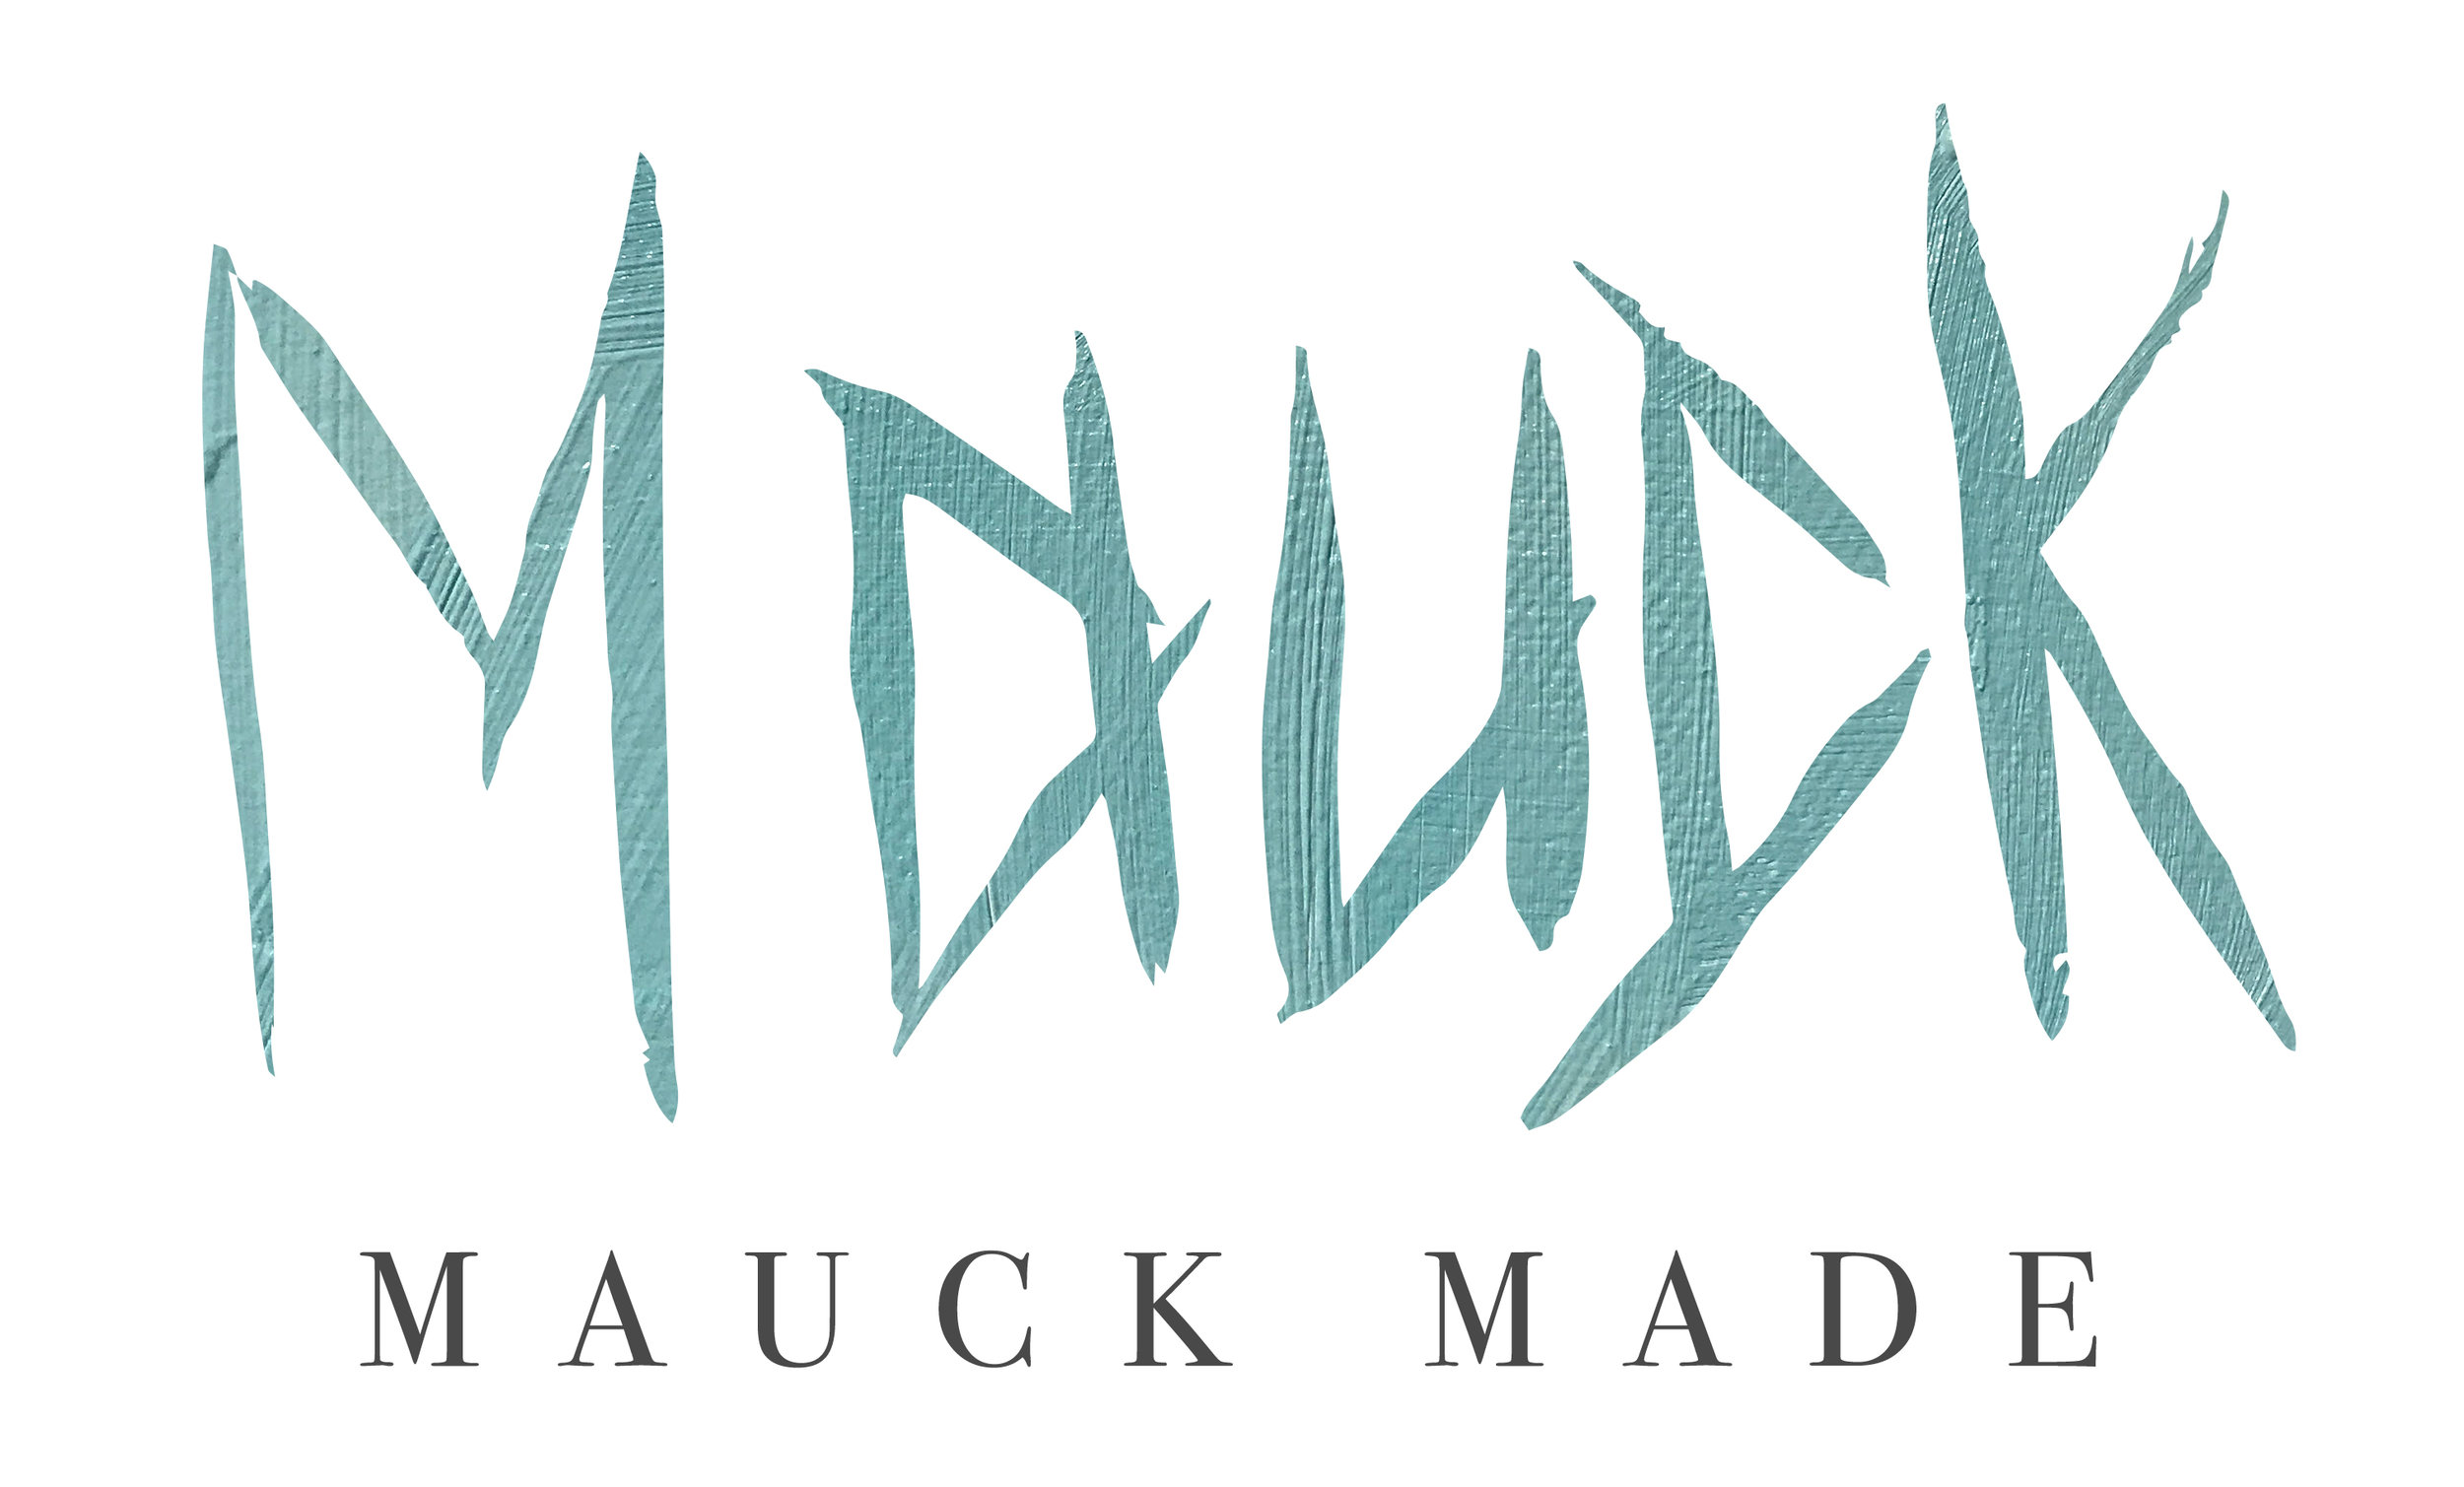 mauck-made-1-final-color.jpg